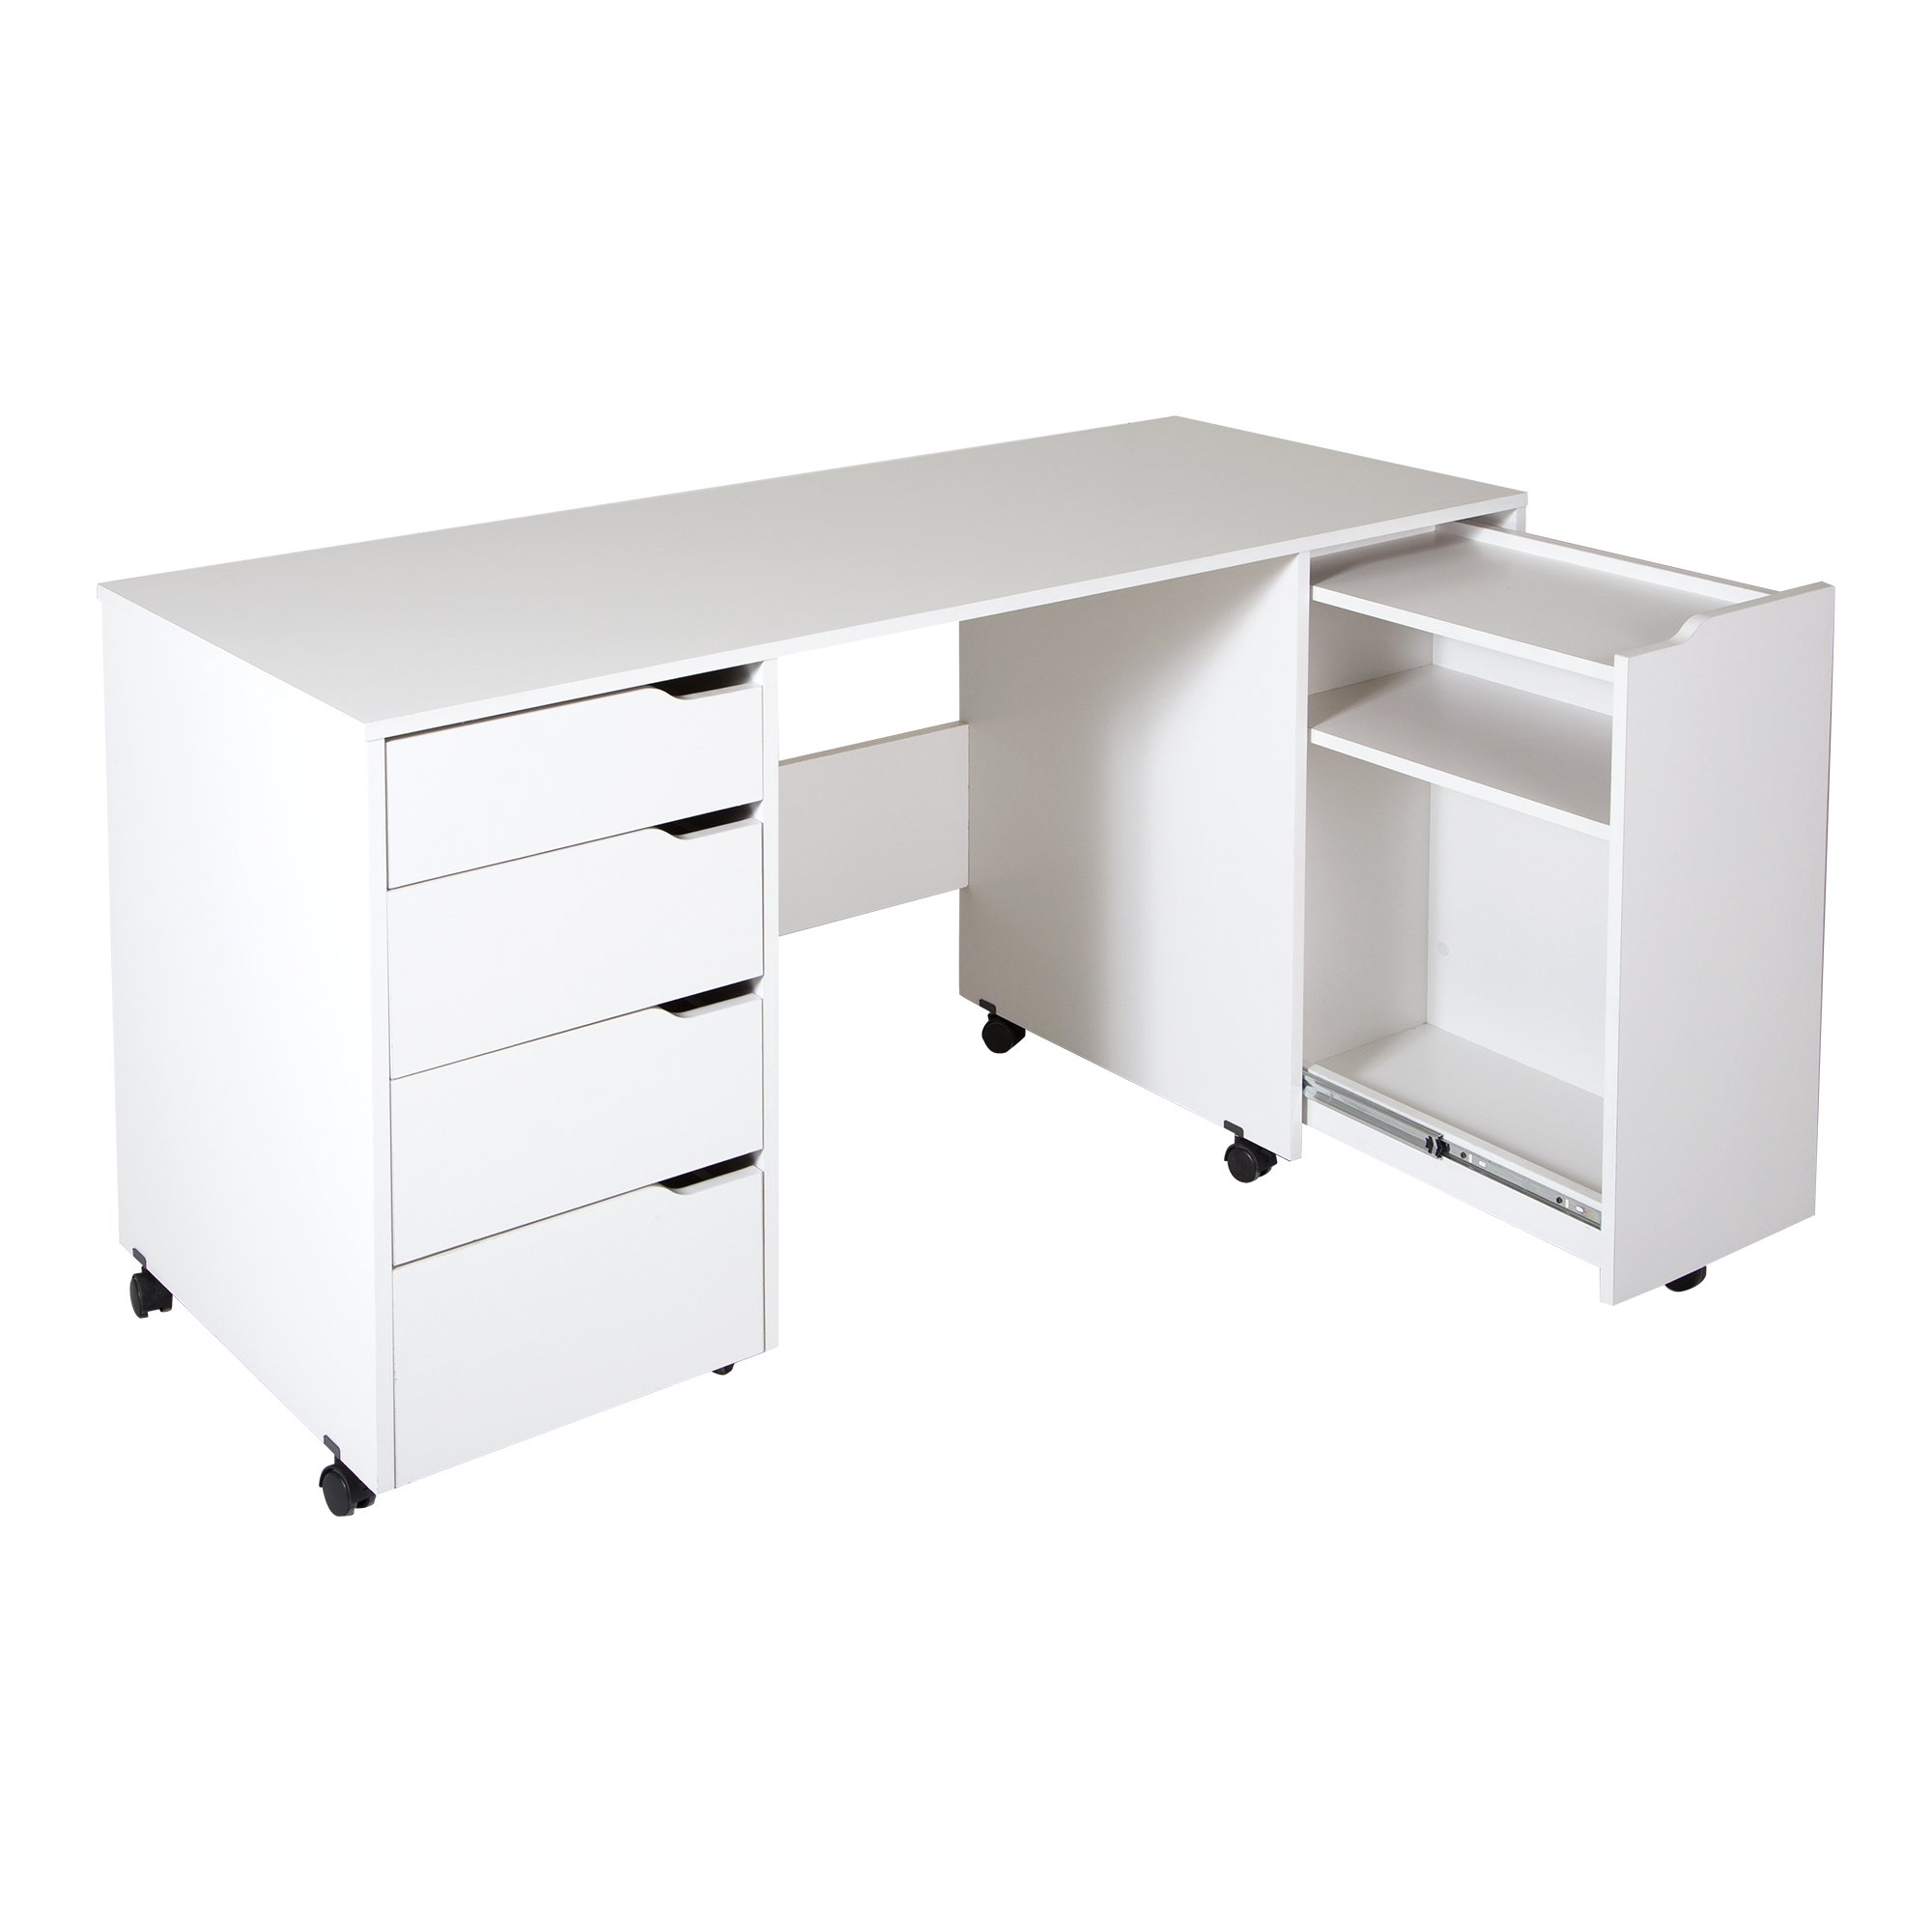 South Shore Crea Craft Table on Wheels with Sliding Shelf, Storage Drawers and Scratchproof Surface, Pure White by South Shore